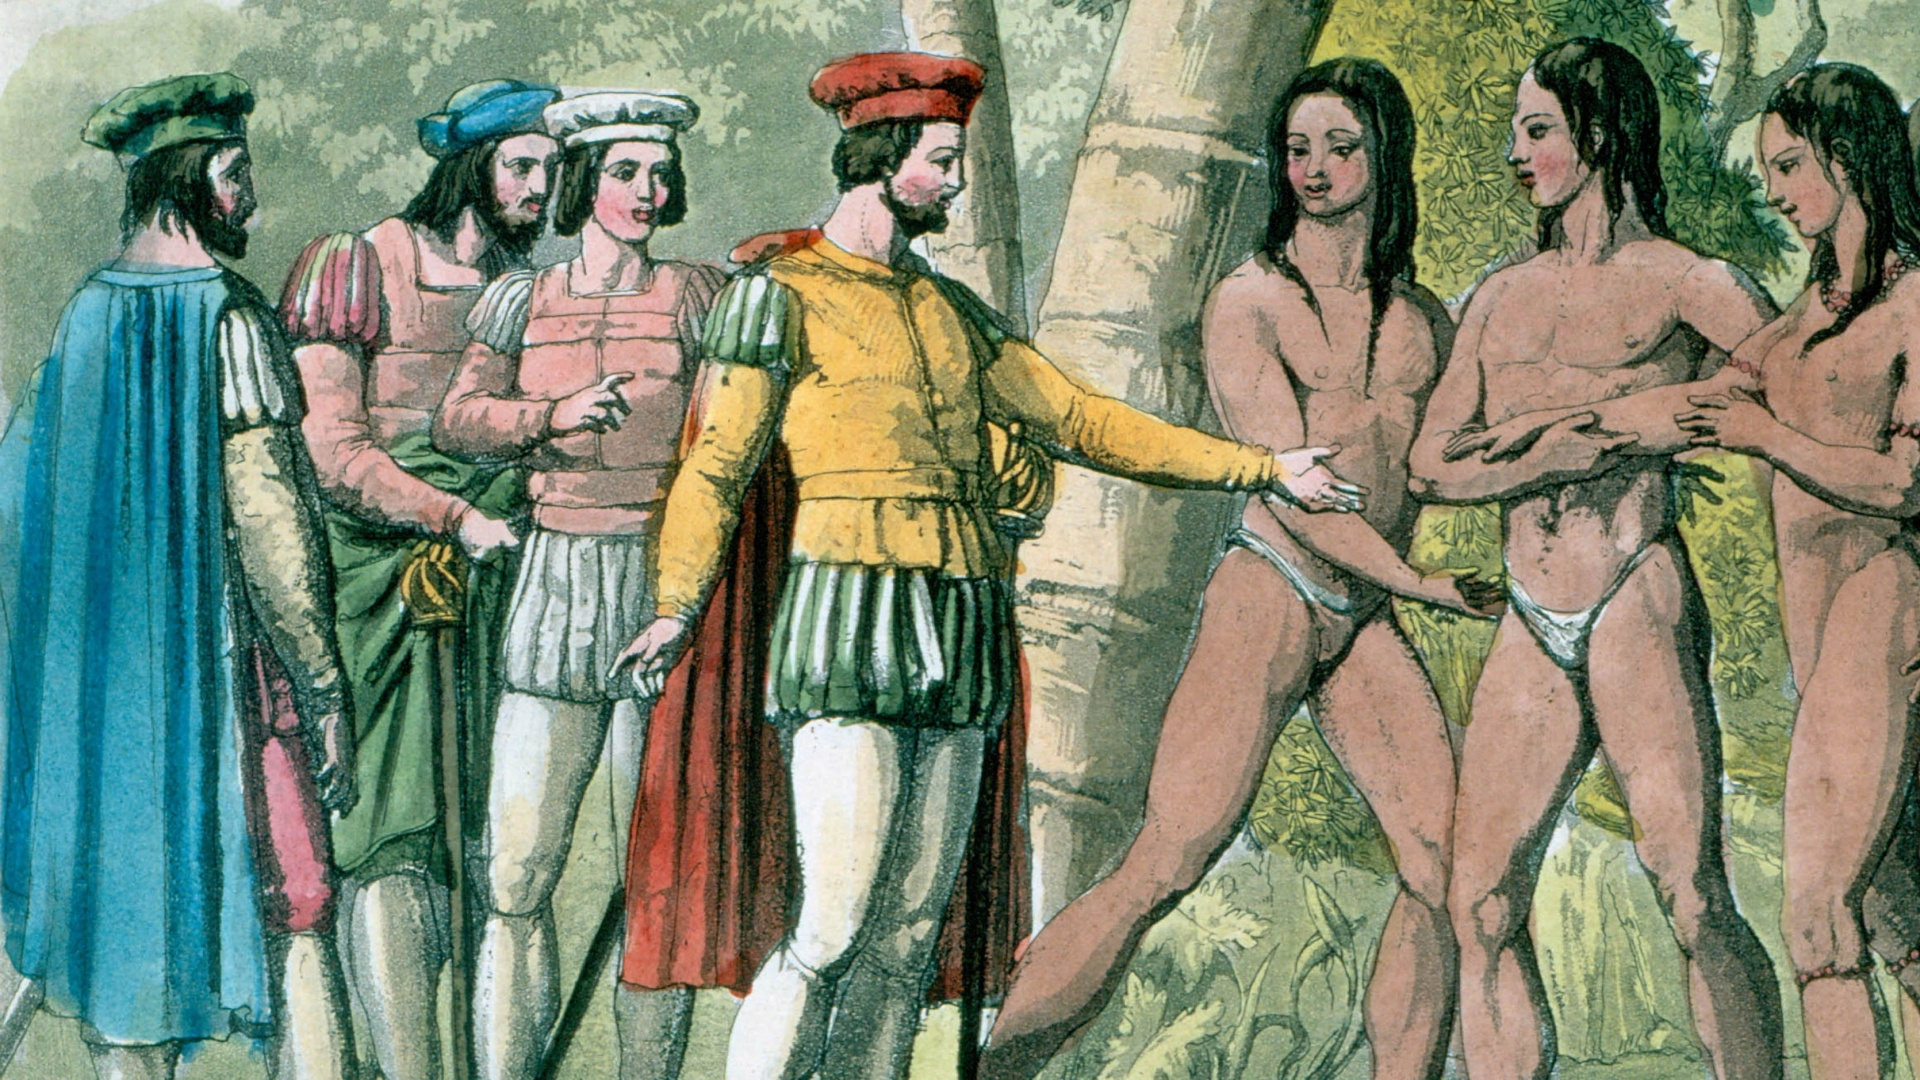 Hernando Cortez, Spanish conquistador who conquered Mexico, making contact with native Mexicans. (Credit: Universal History Archive/Getty Images)